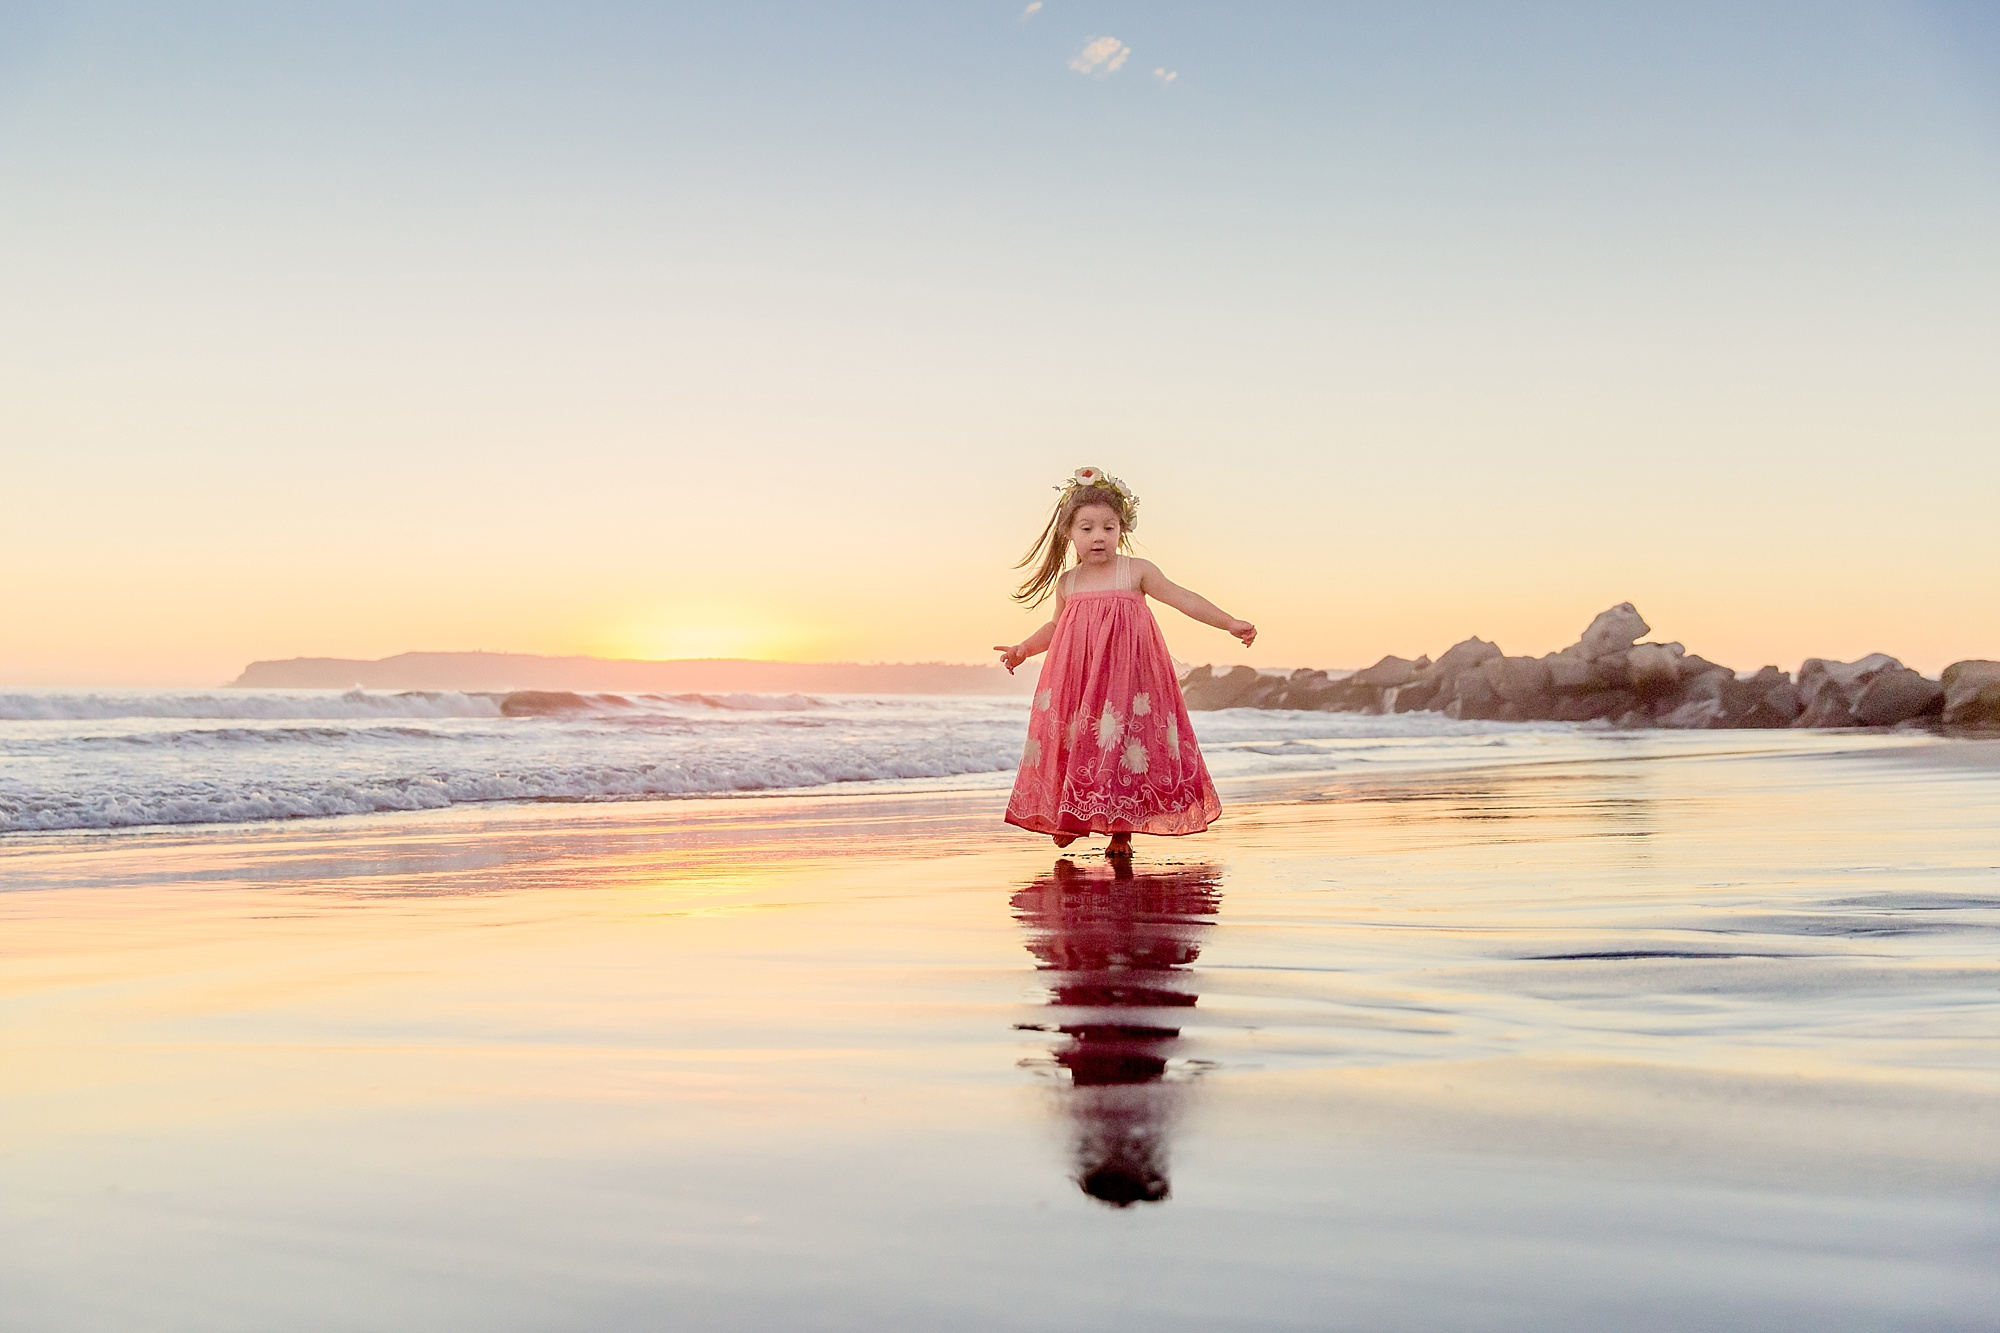 San Diego Photographer | Vacation Photography